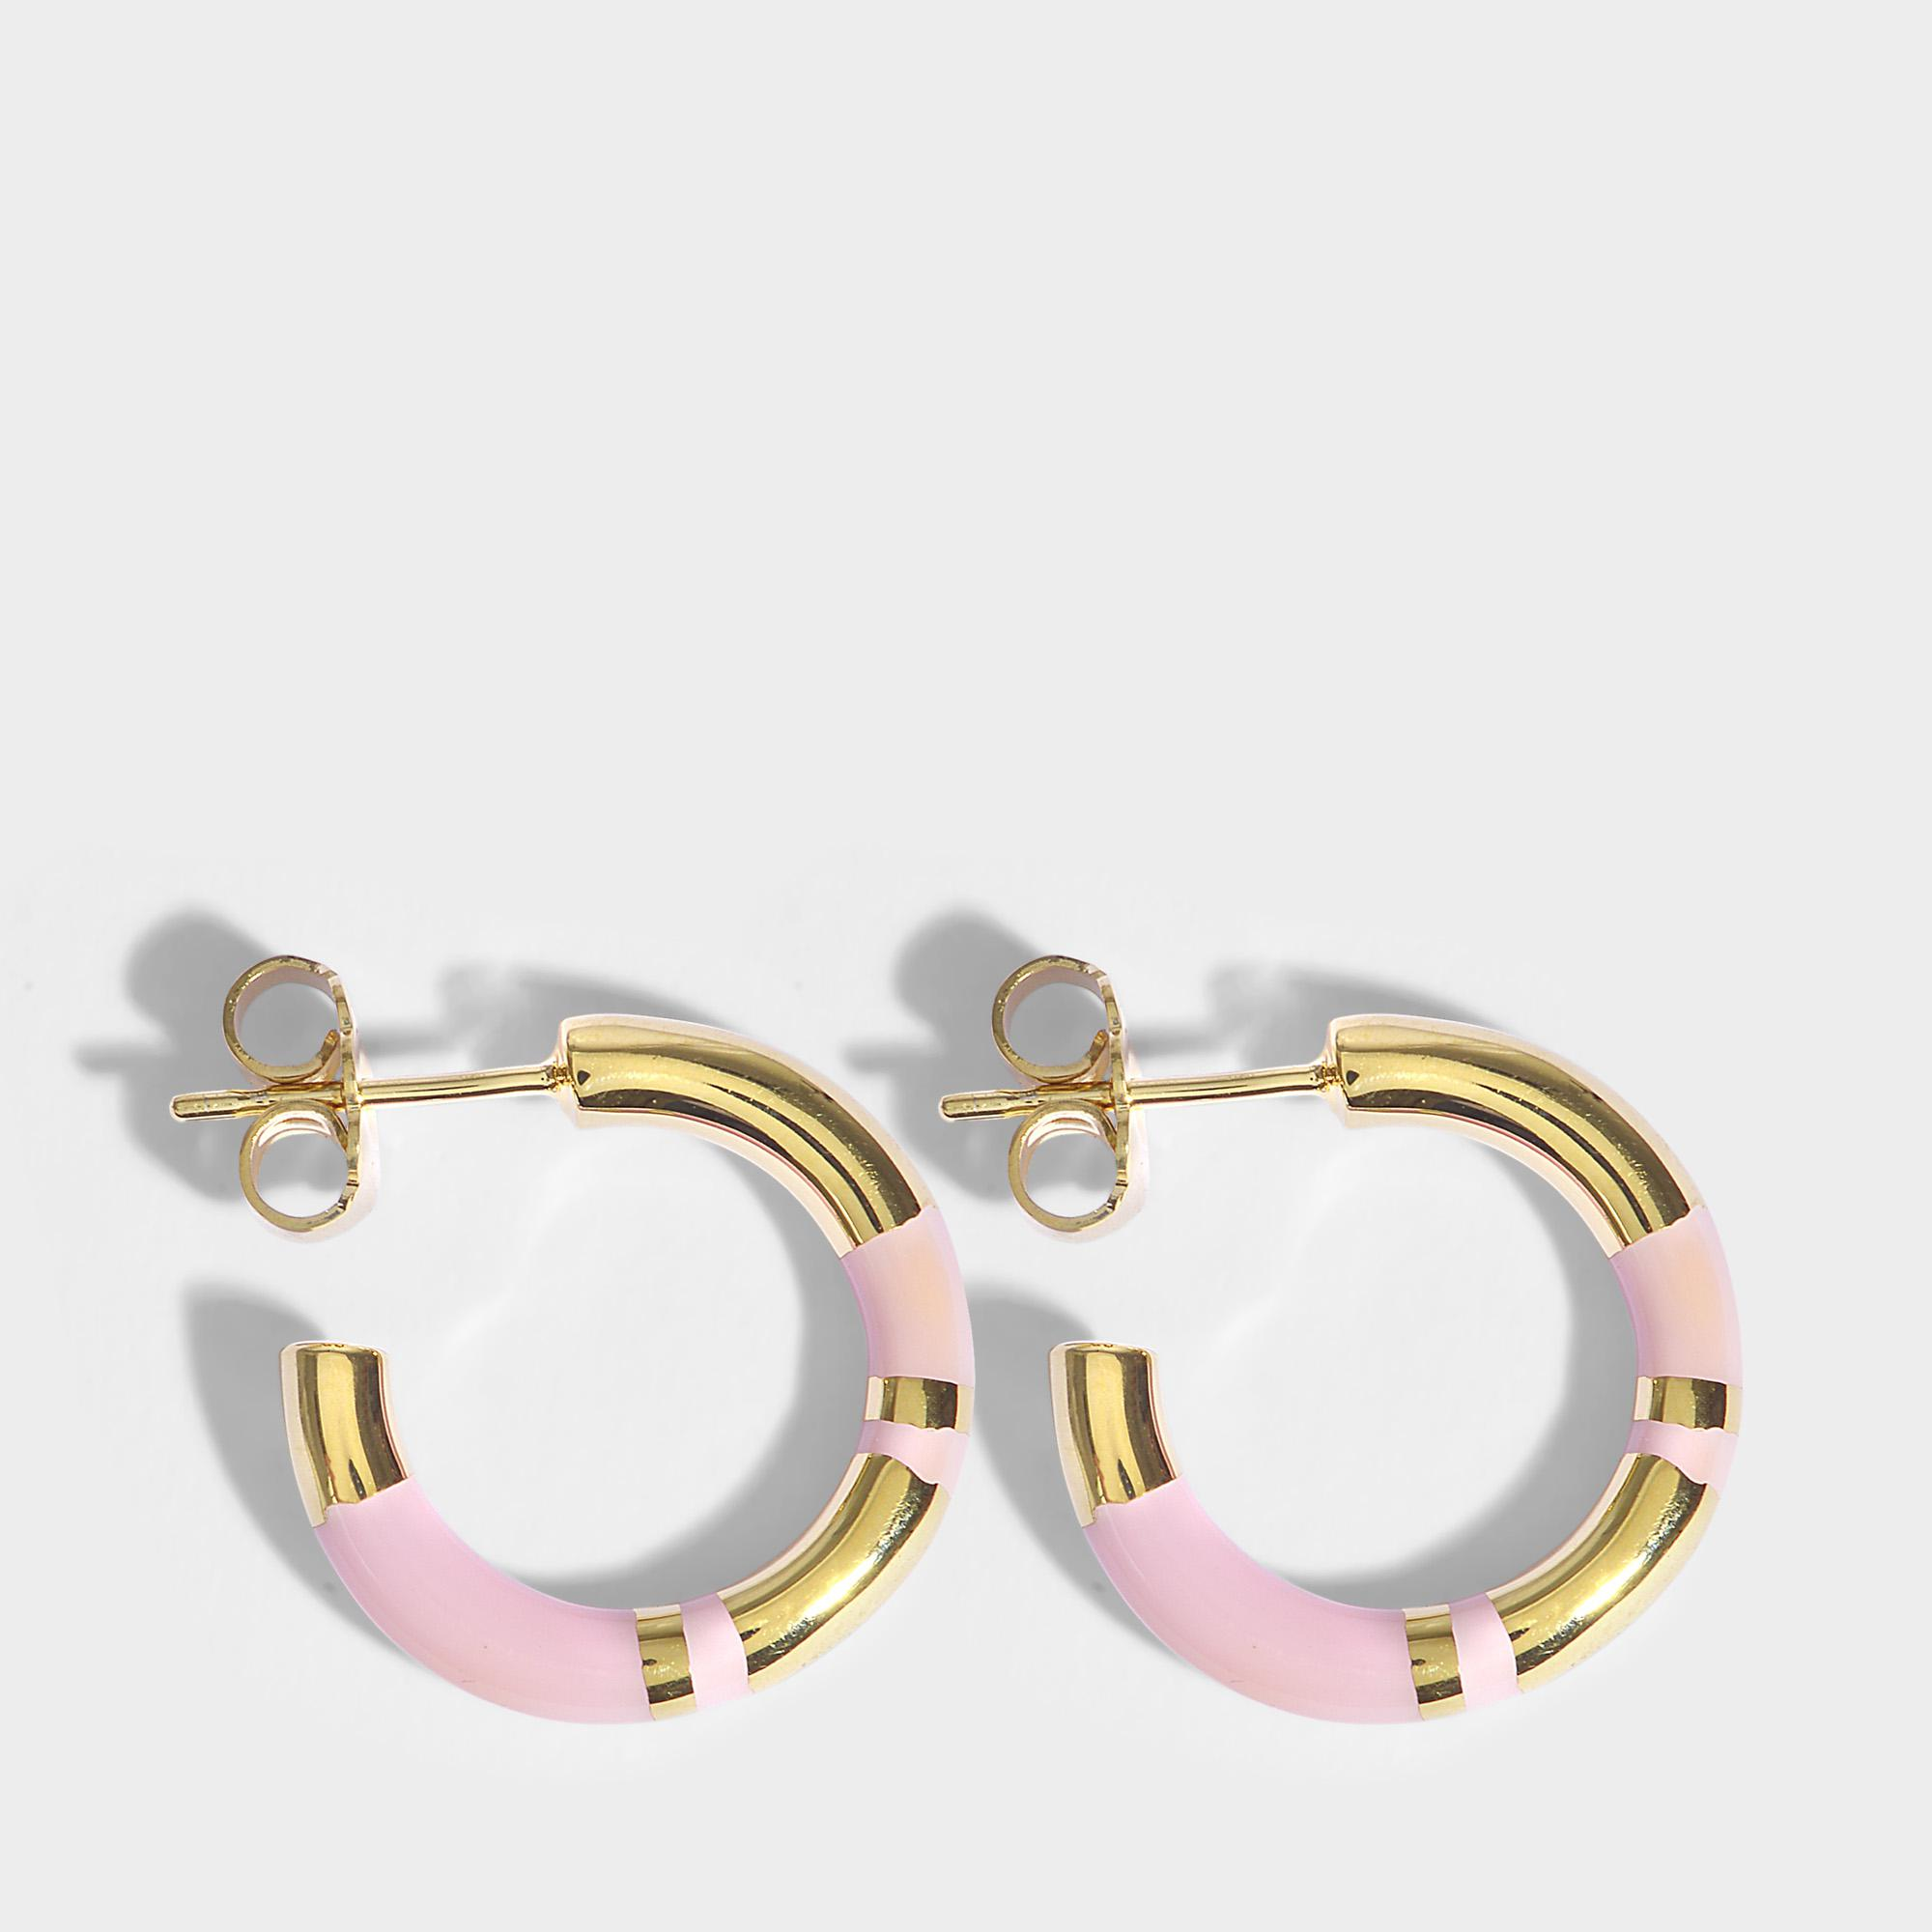 Aurélie Bidermann Positano Bracelet in Baby Pink 18K Gold-Plated Brass